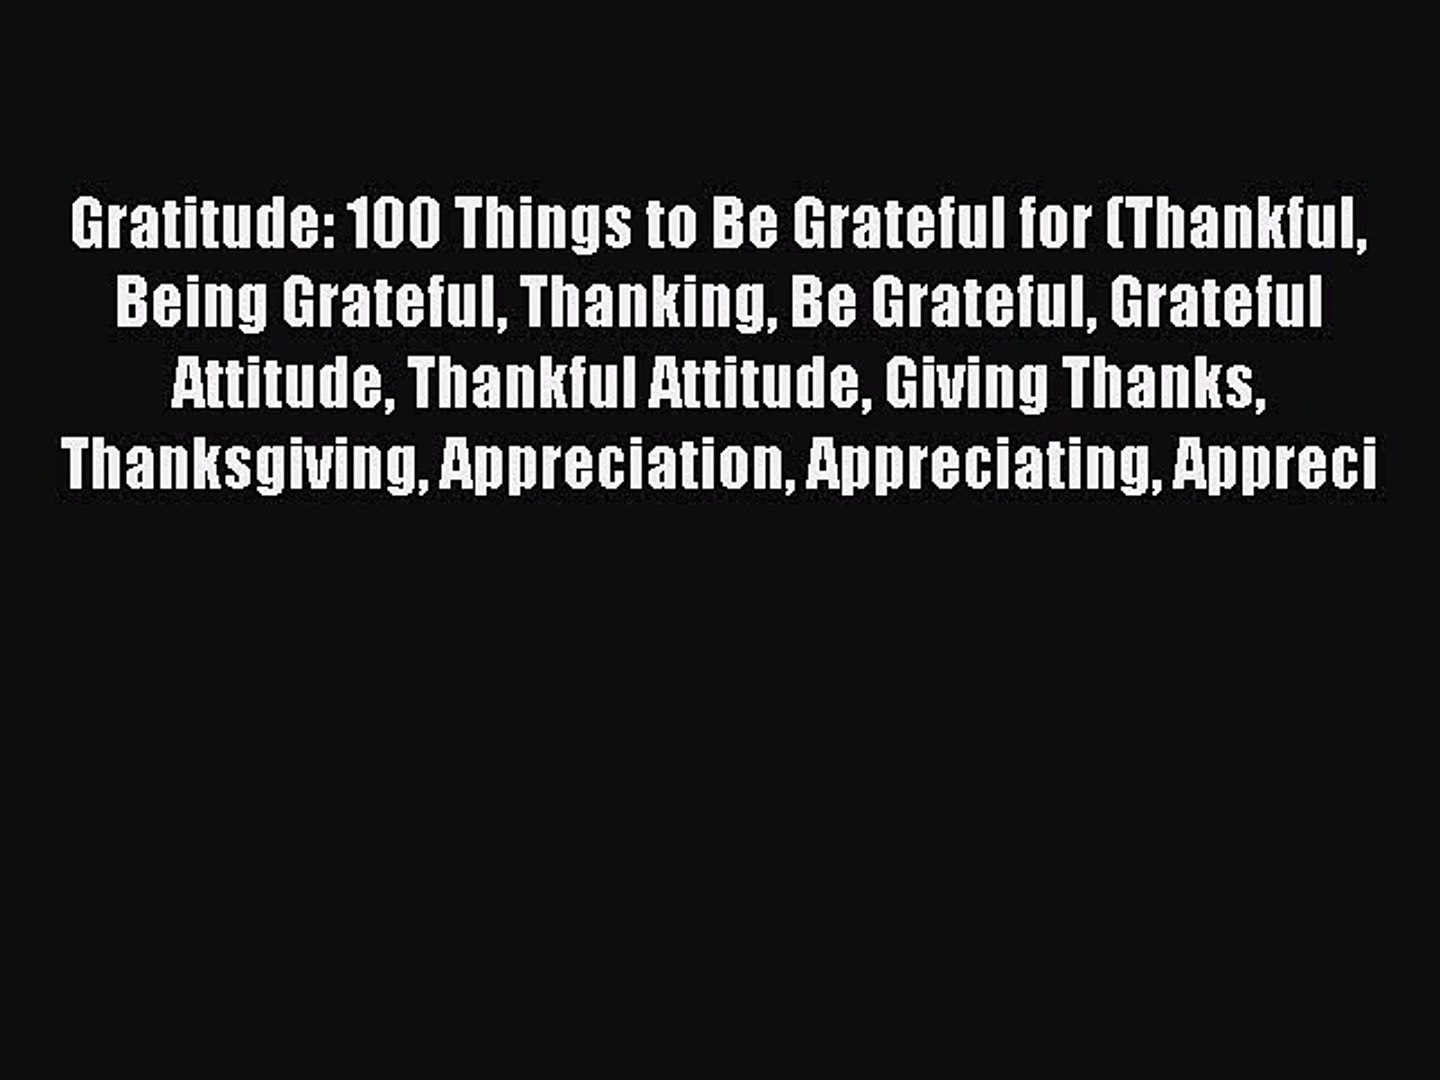 [Read] Gratitude: 100 Things to Be Grateful for (Thankful Being Grateful Thanking Be Grateful